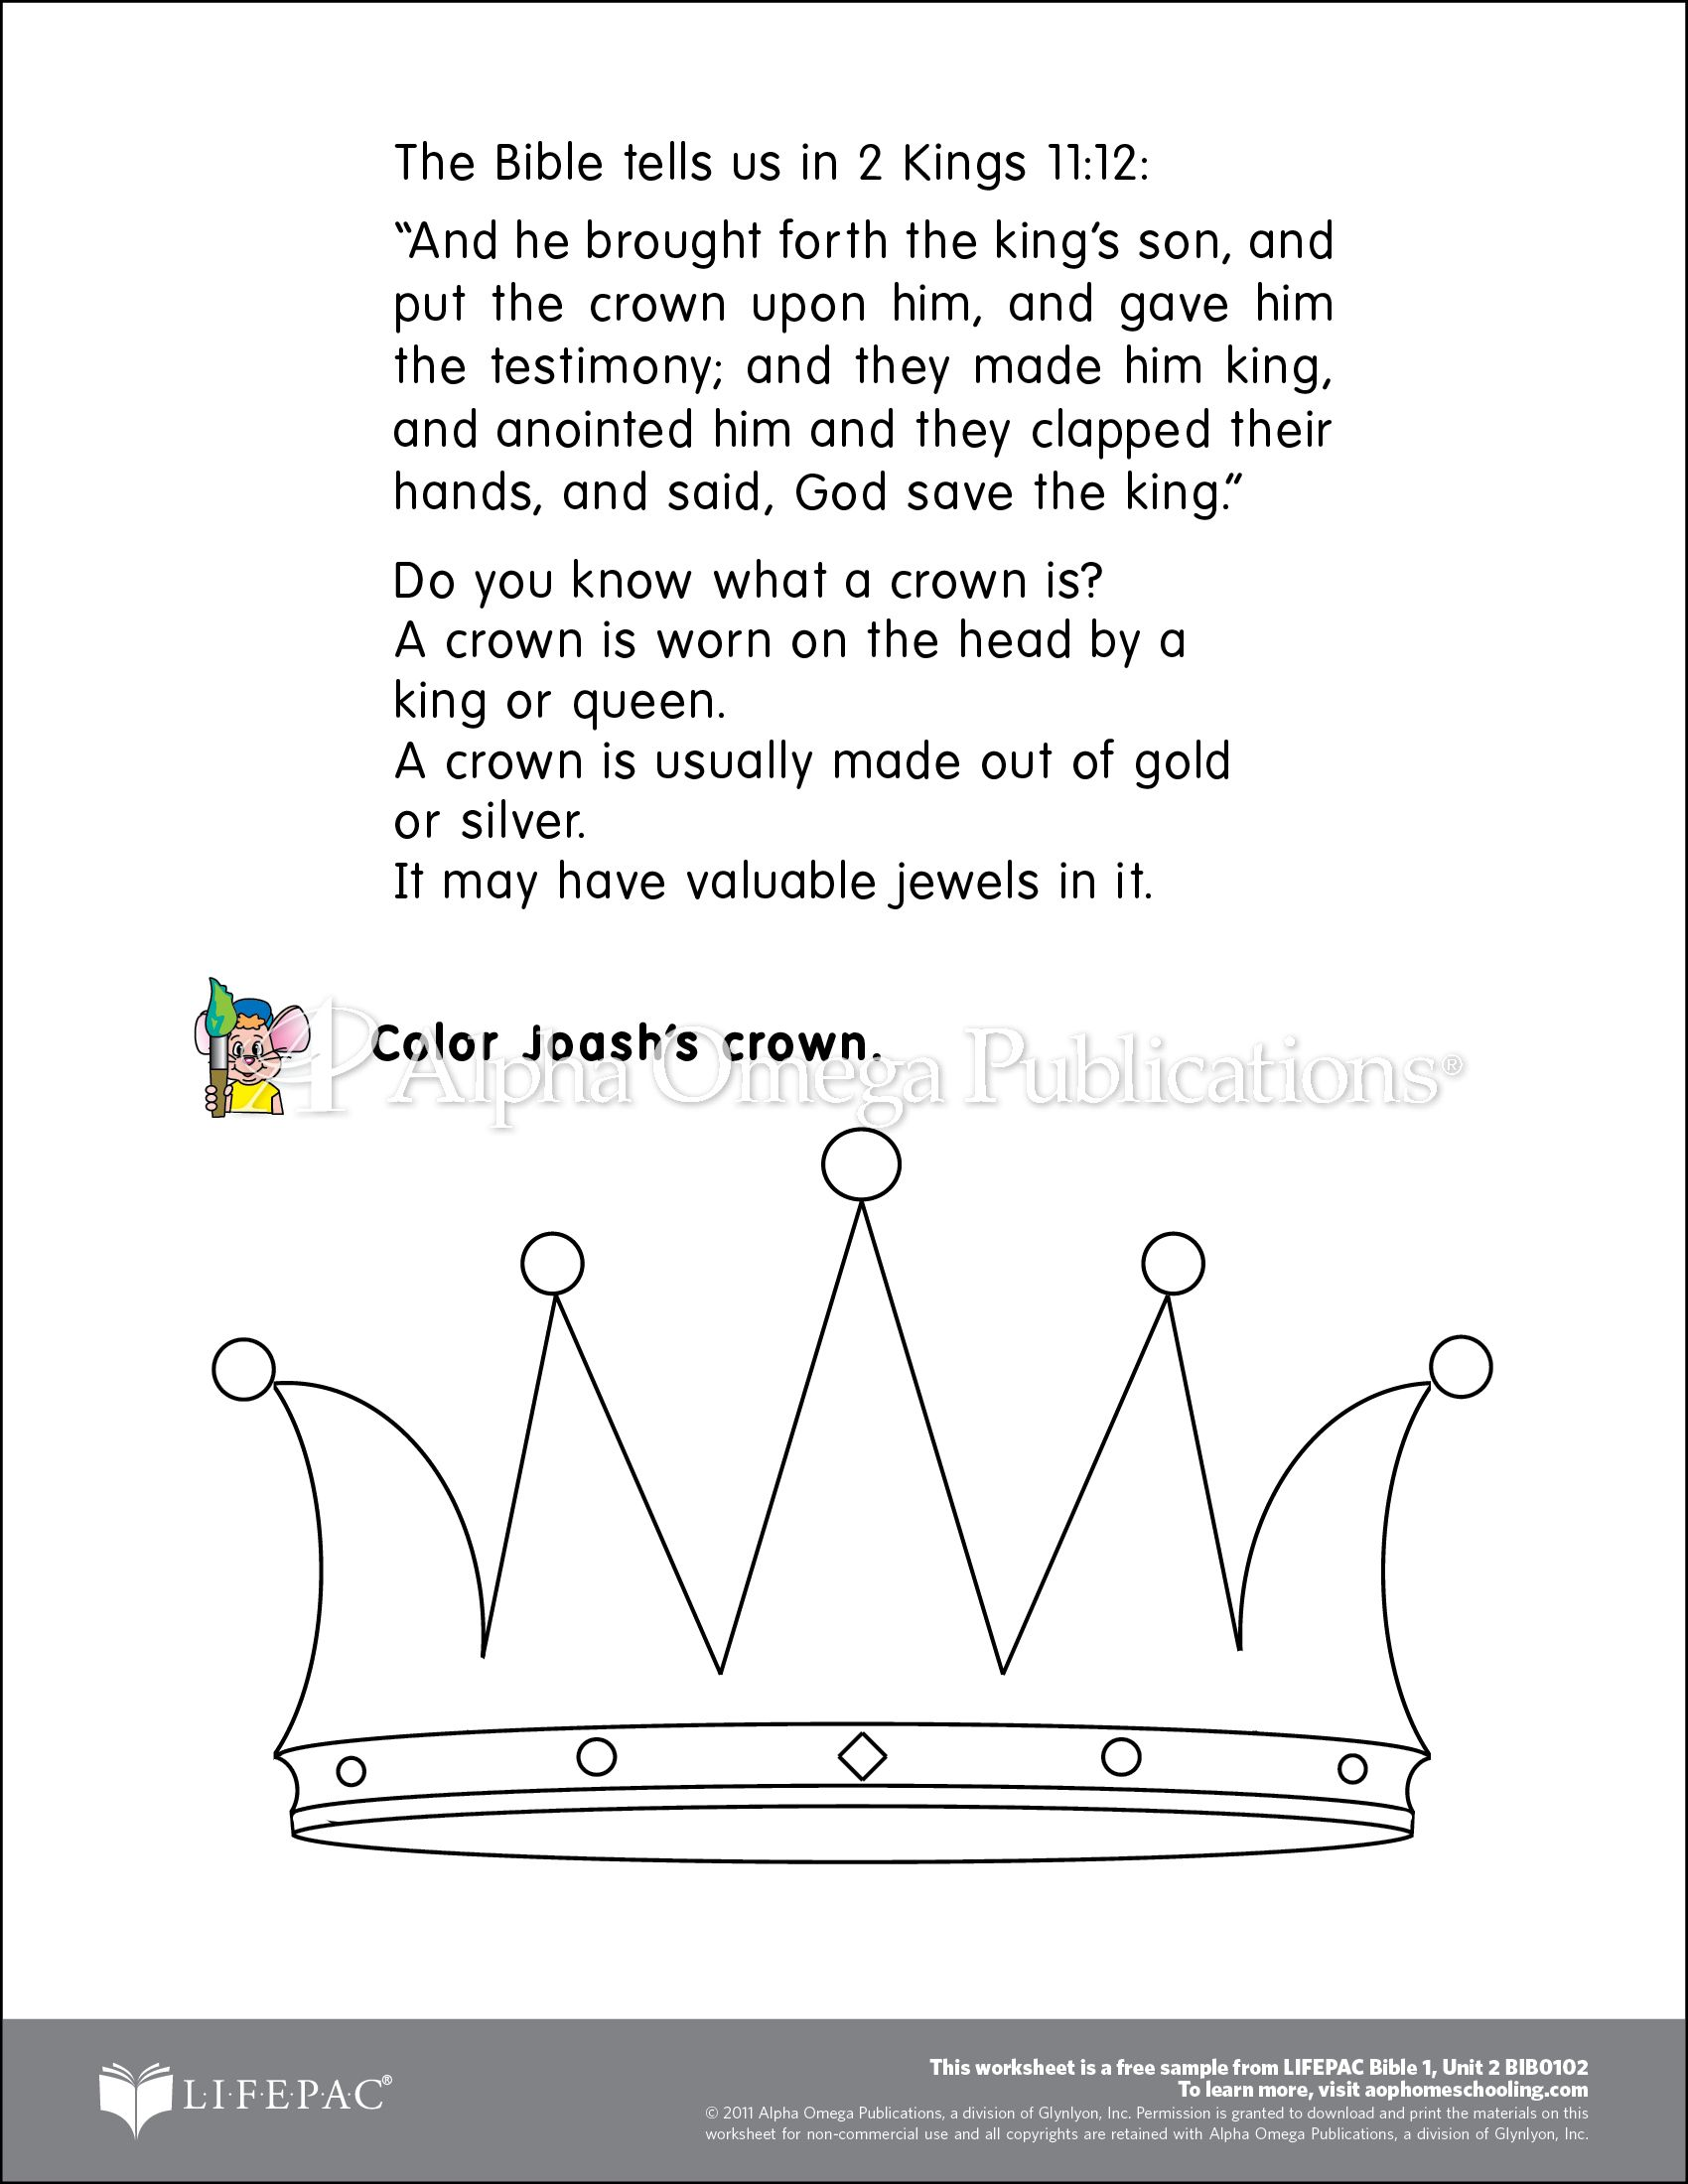 Aop Lifepac Free Printable Worksheet Sample Page Download For Homeschooling From Alpha Omega